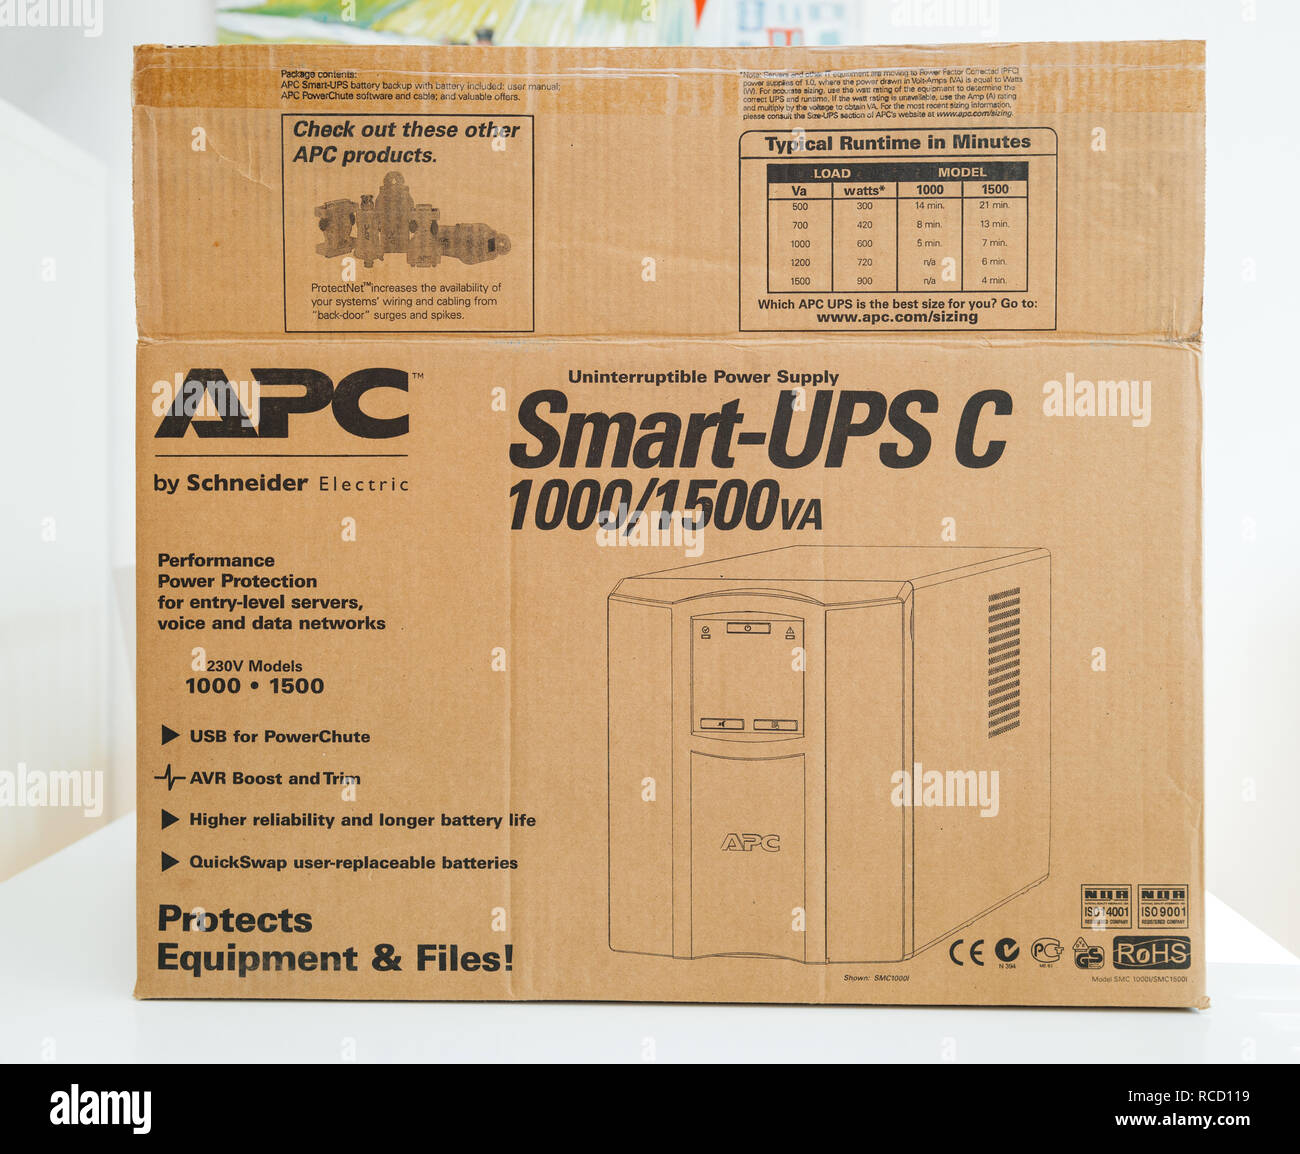 PARIS, FRANCE - MAR 24, 2018: Front view of cardboard box of